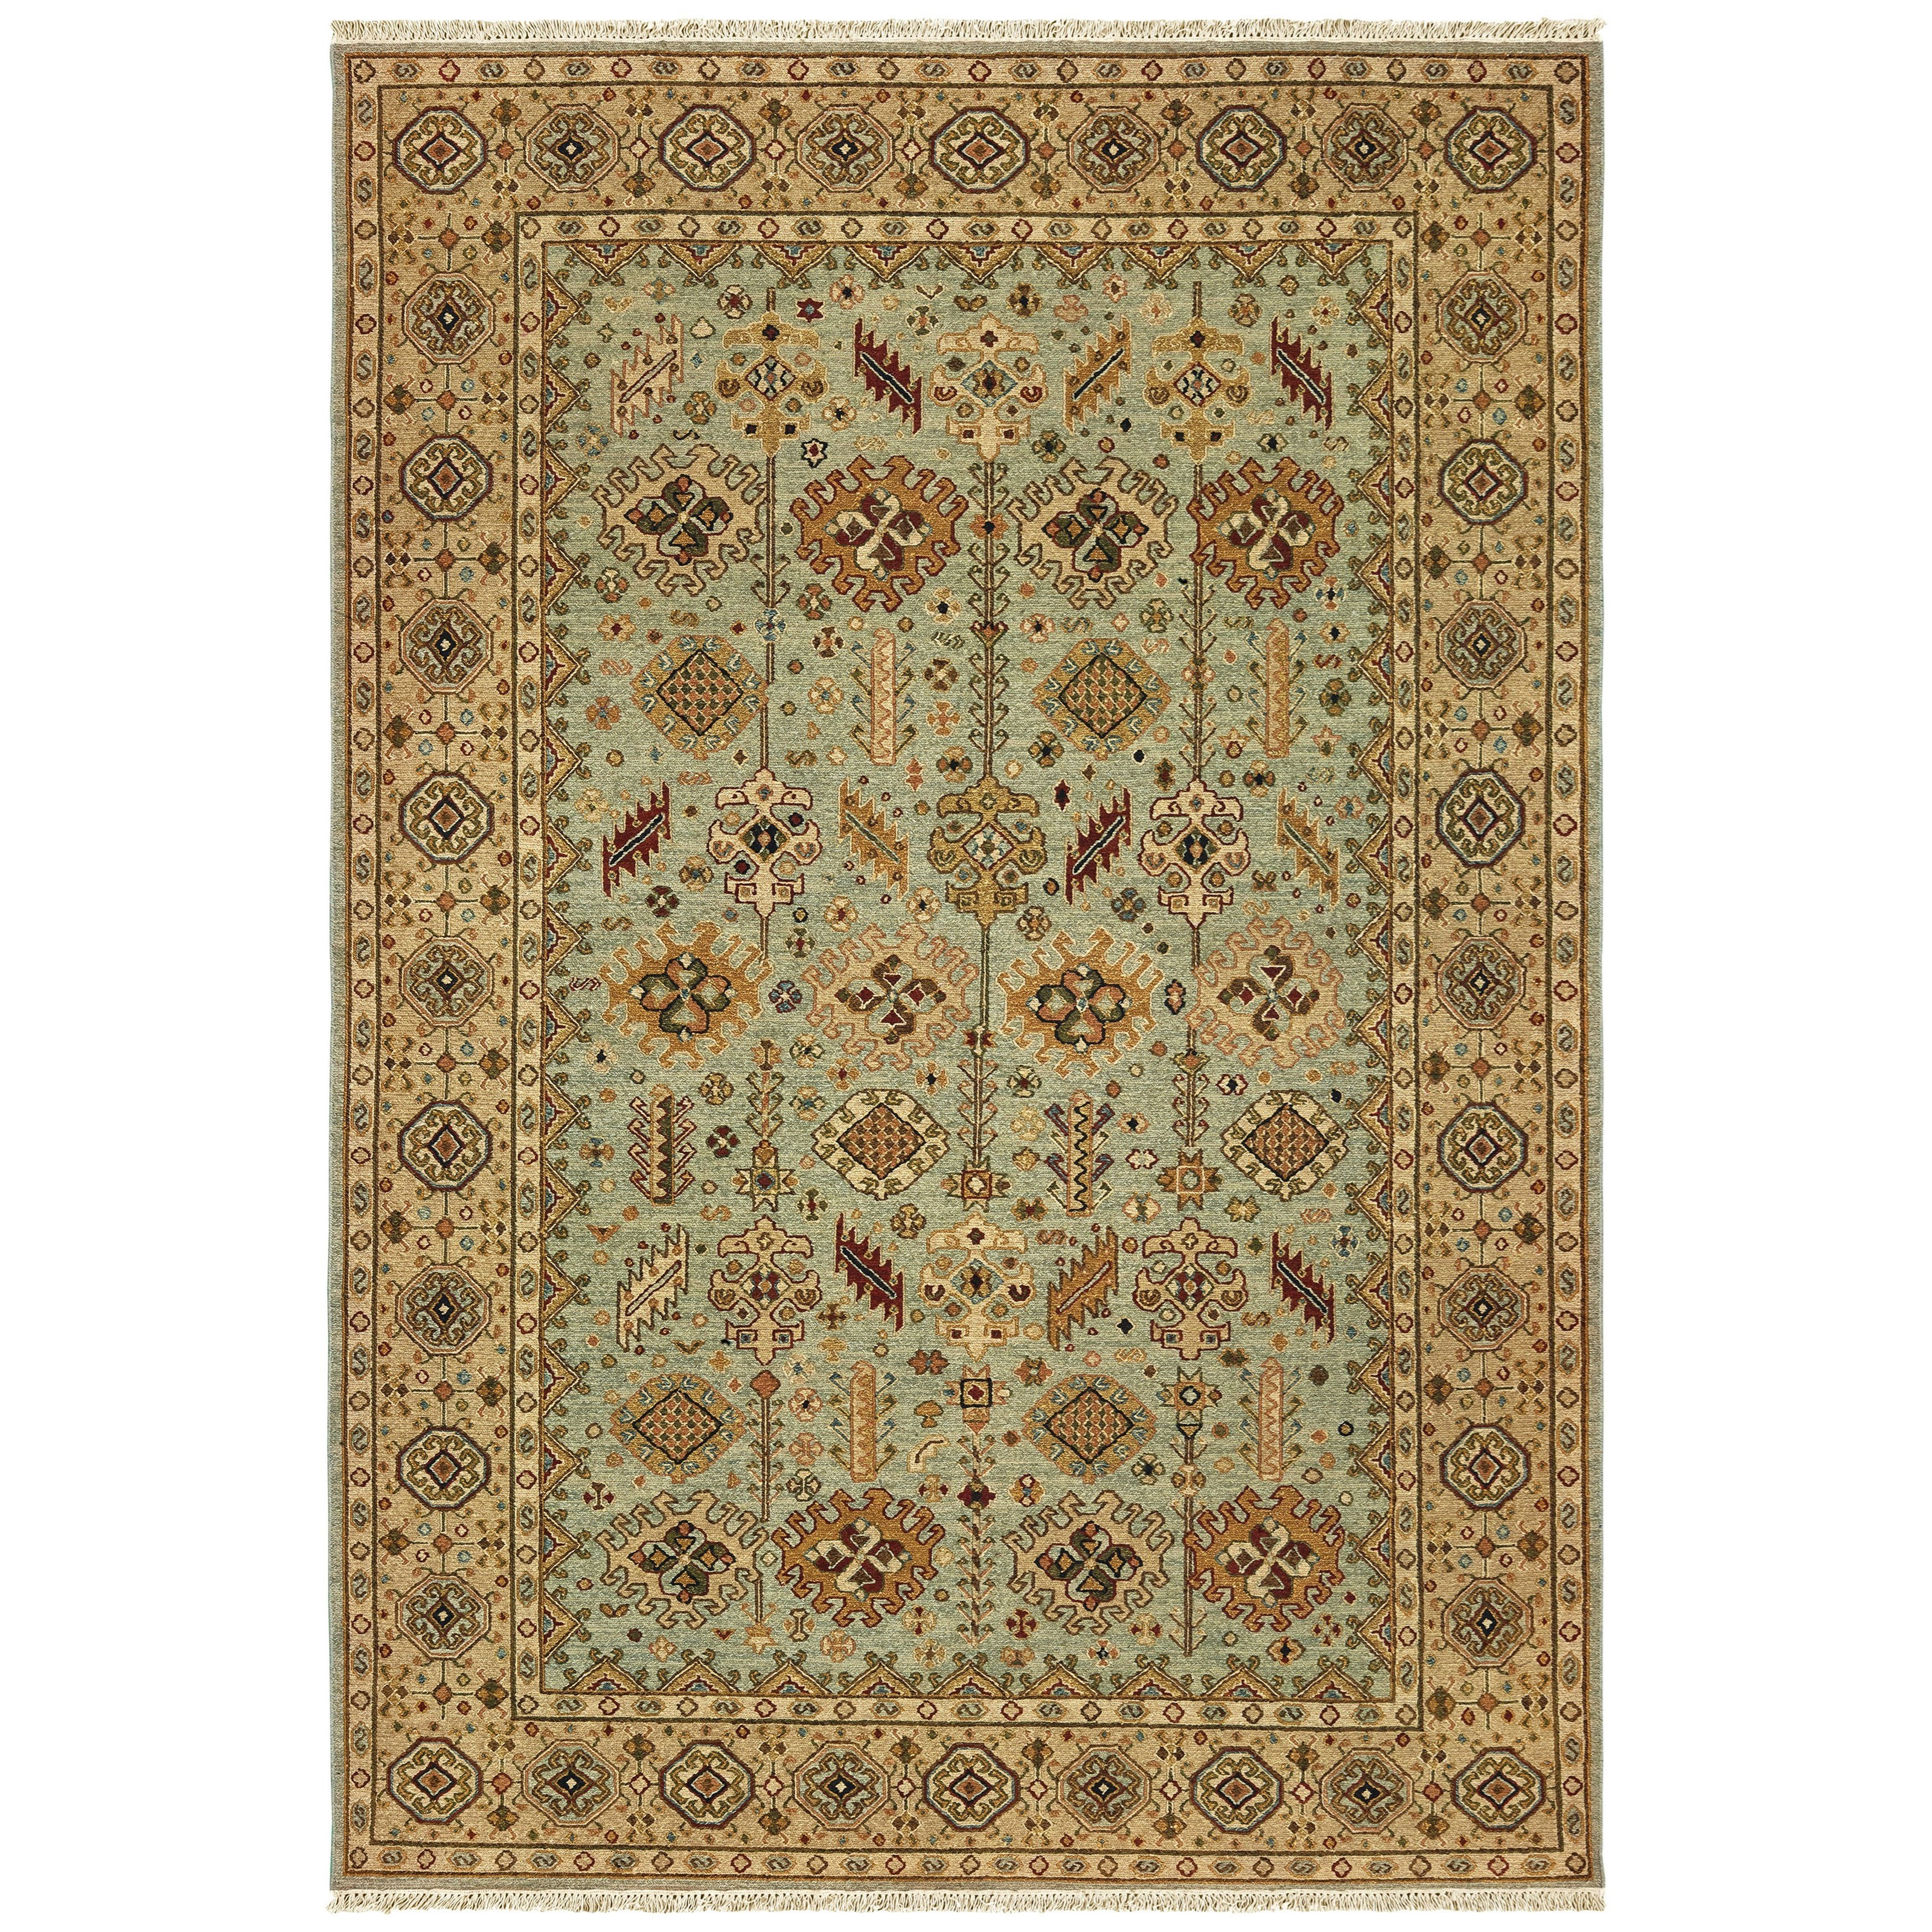 9' X 12' Rectangle Rug